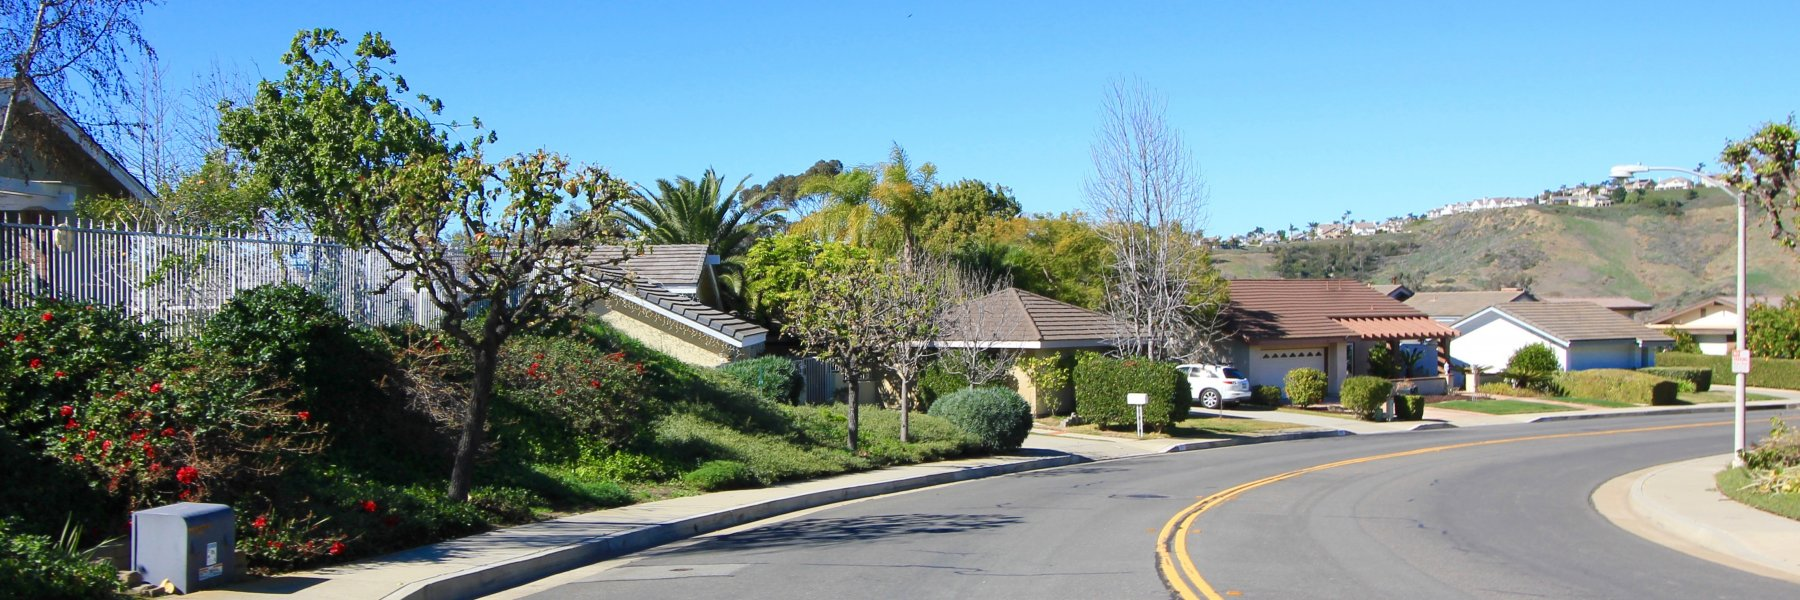 Broadmoor is a neighborhood of homes in San Clemente Ca